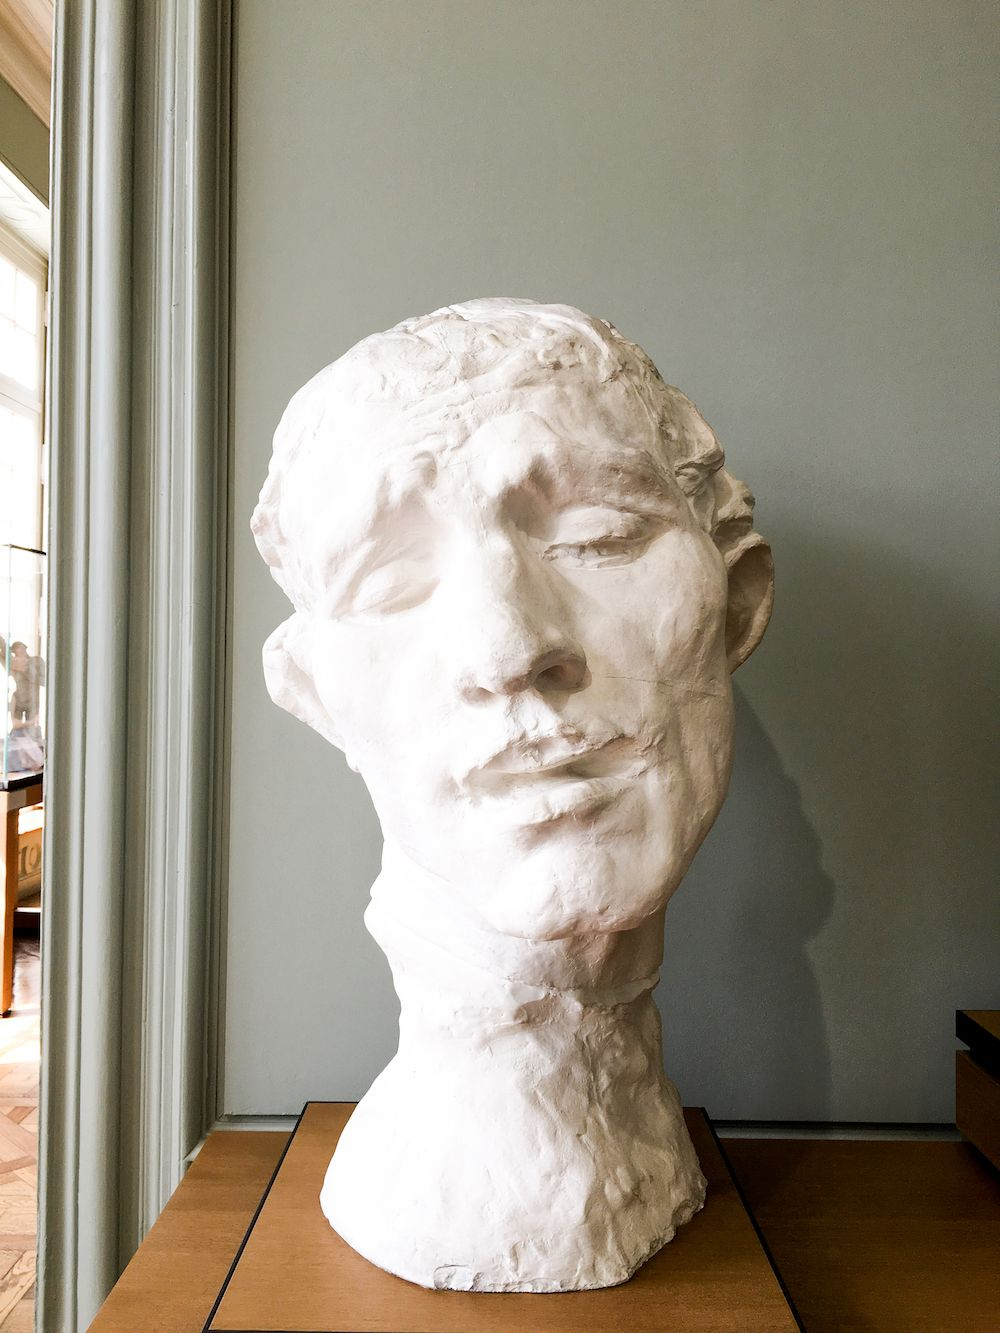 Head Sculpture at Musée Rodin